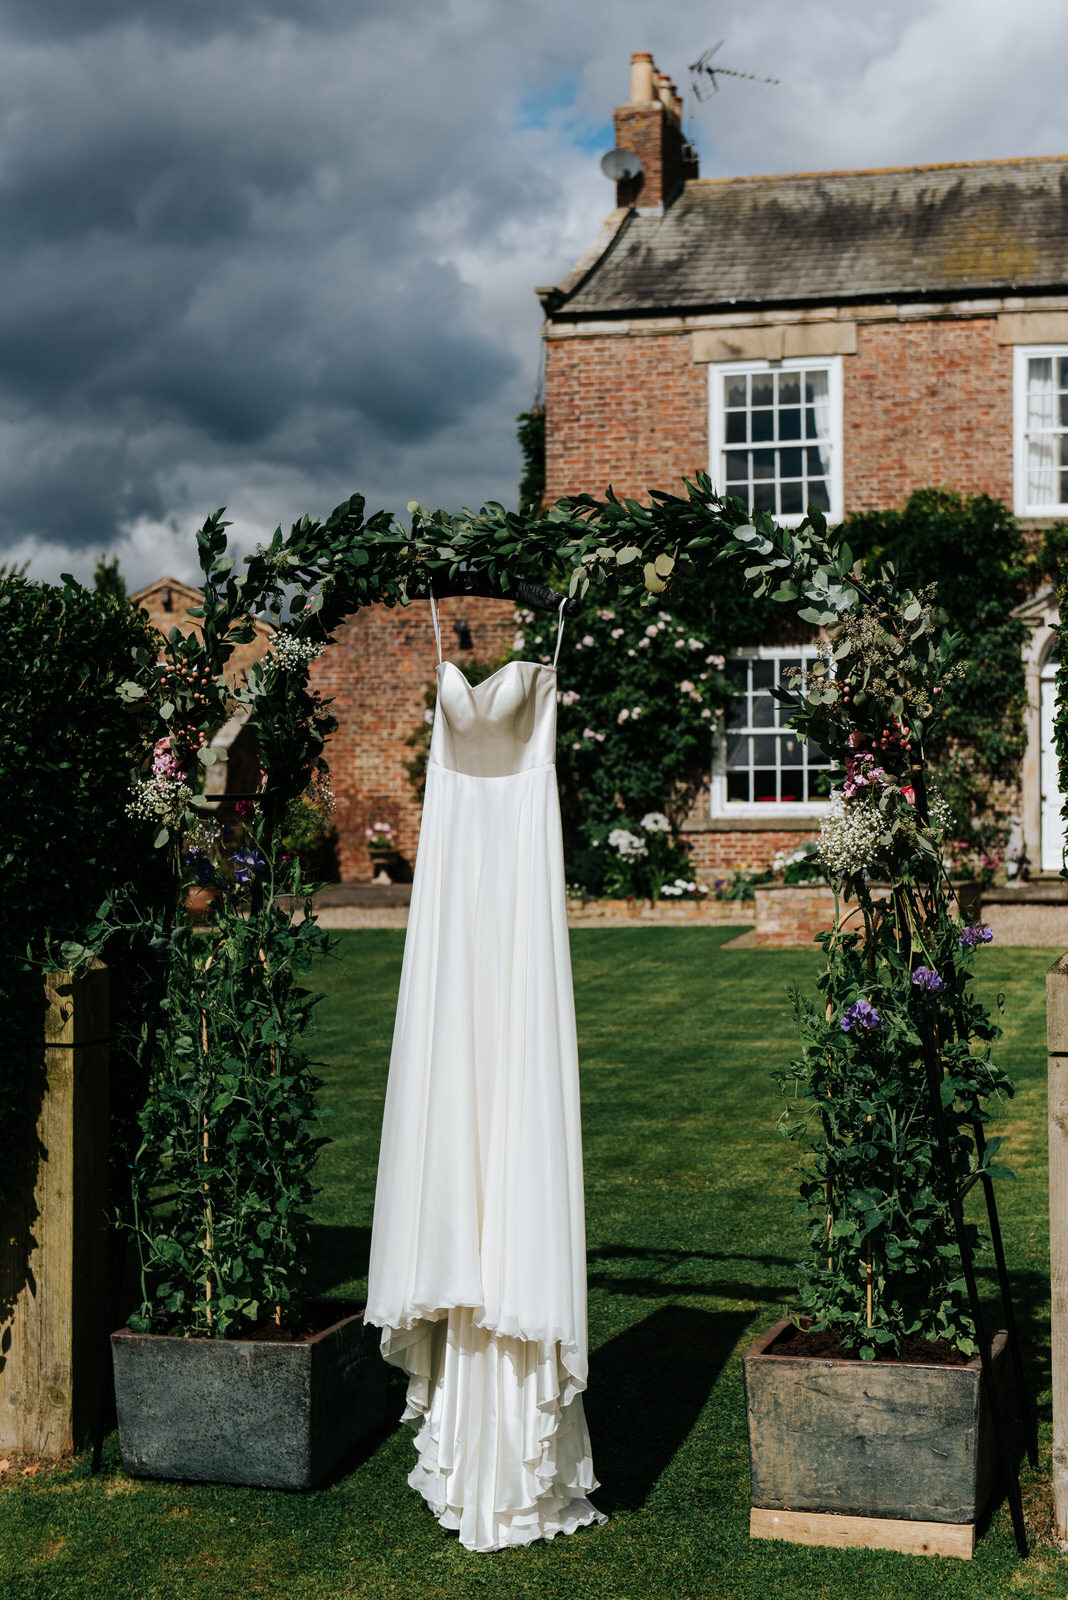 Bride's dress hanging by house